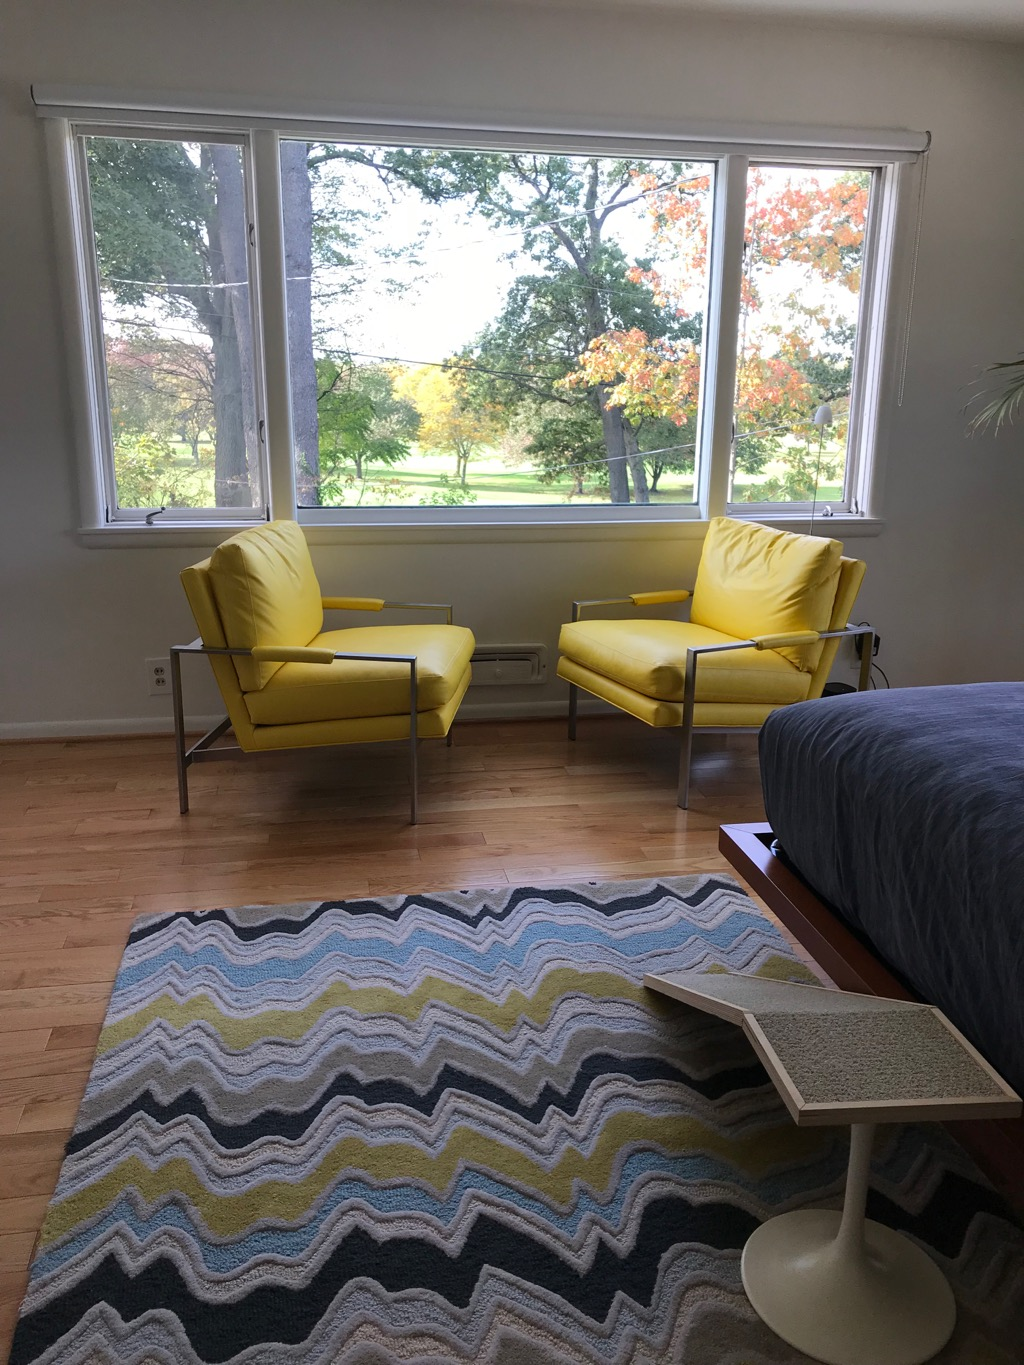 MASTER BEDROOM YELLOW CHAIRS